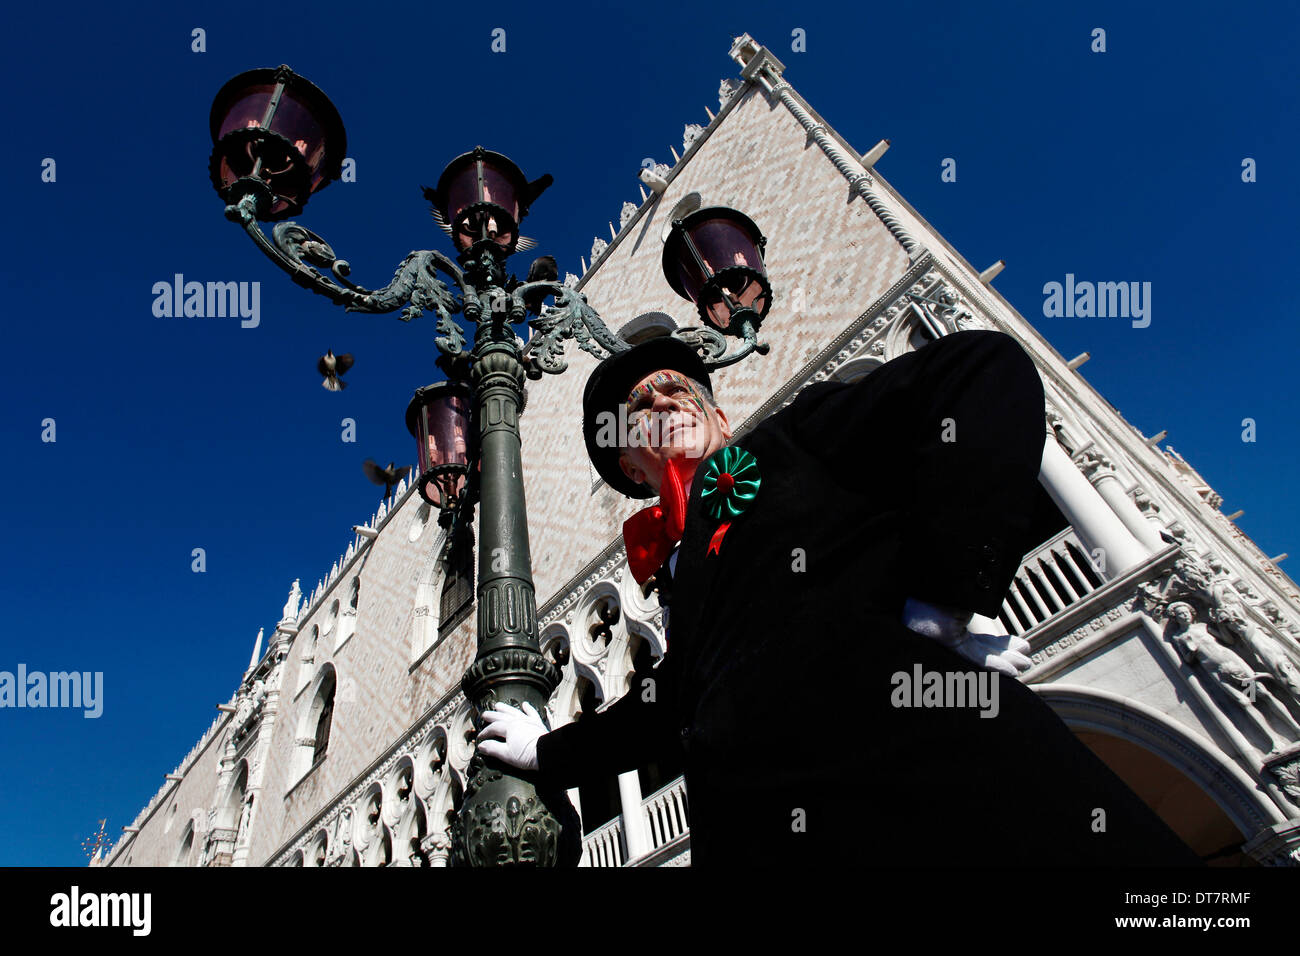 A masked man at Carnival of Venice rested on a lamp-post with Ducale building on the background - Stock Image